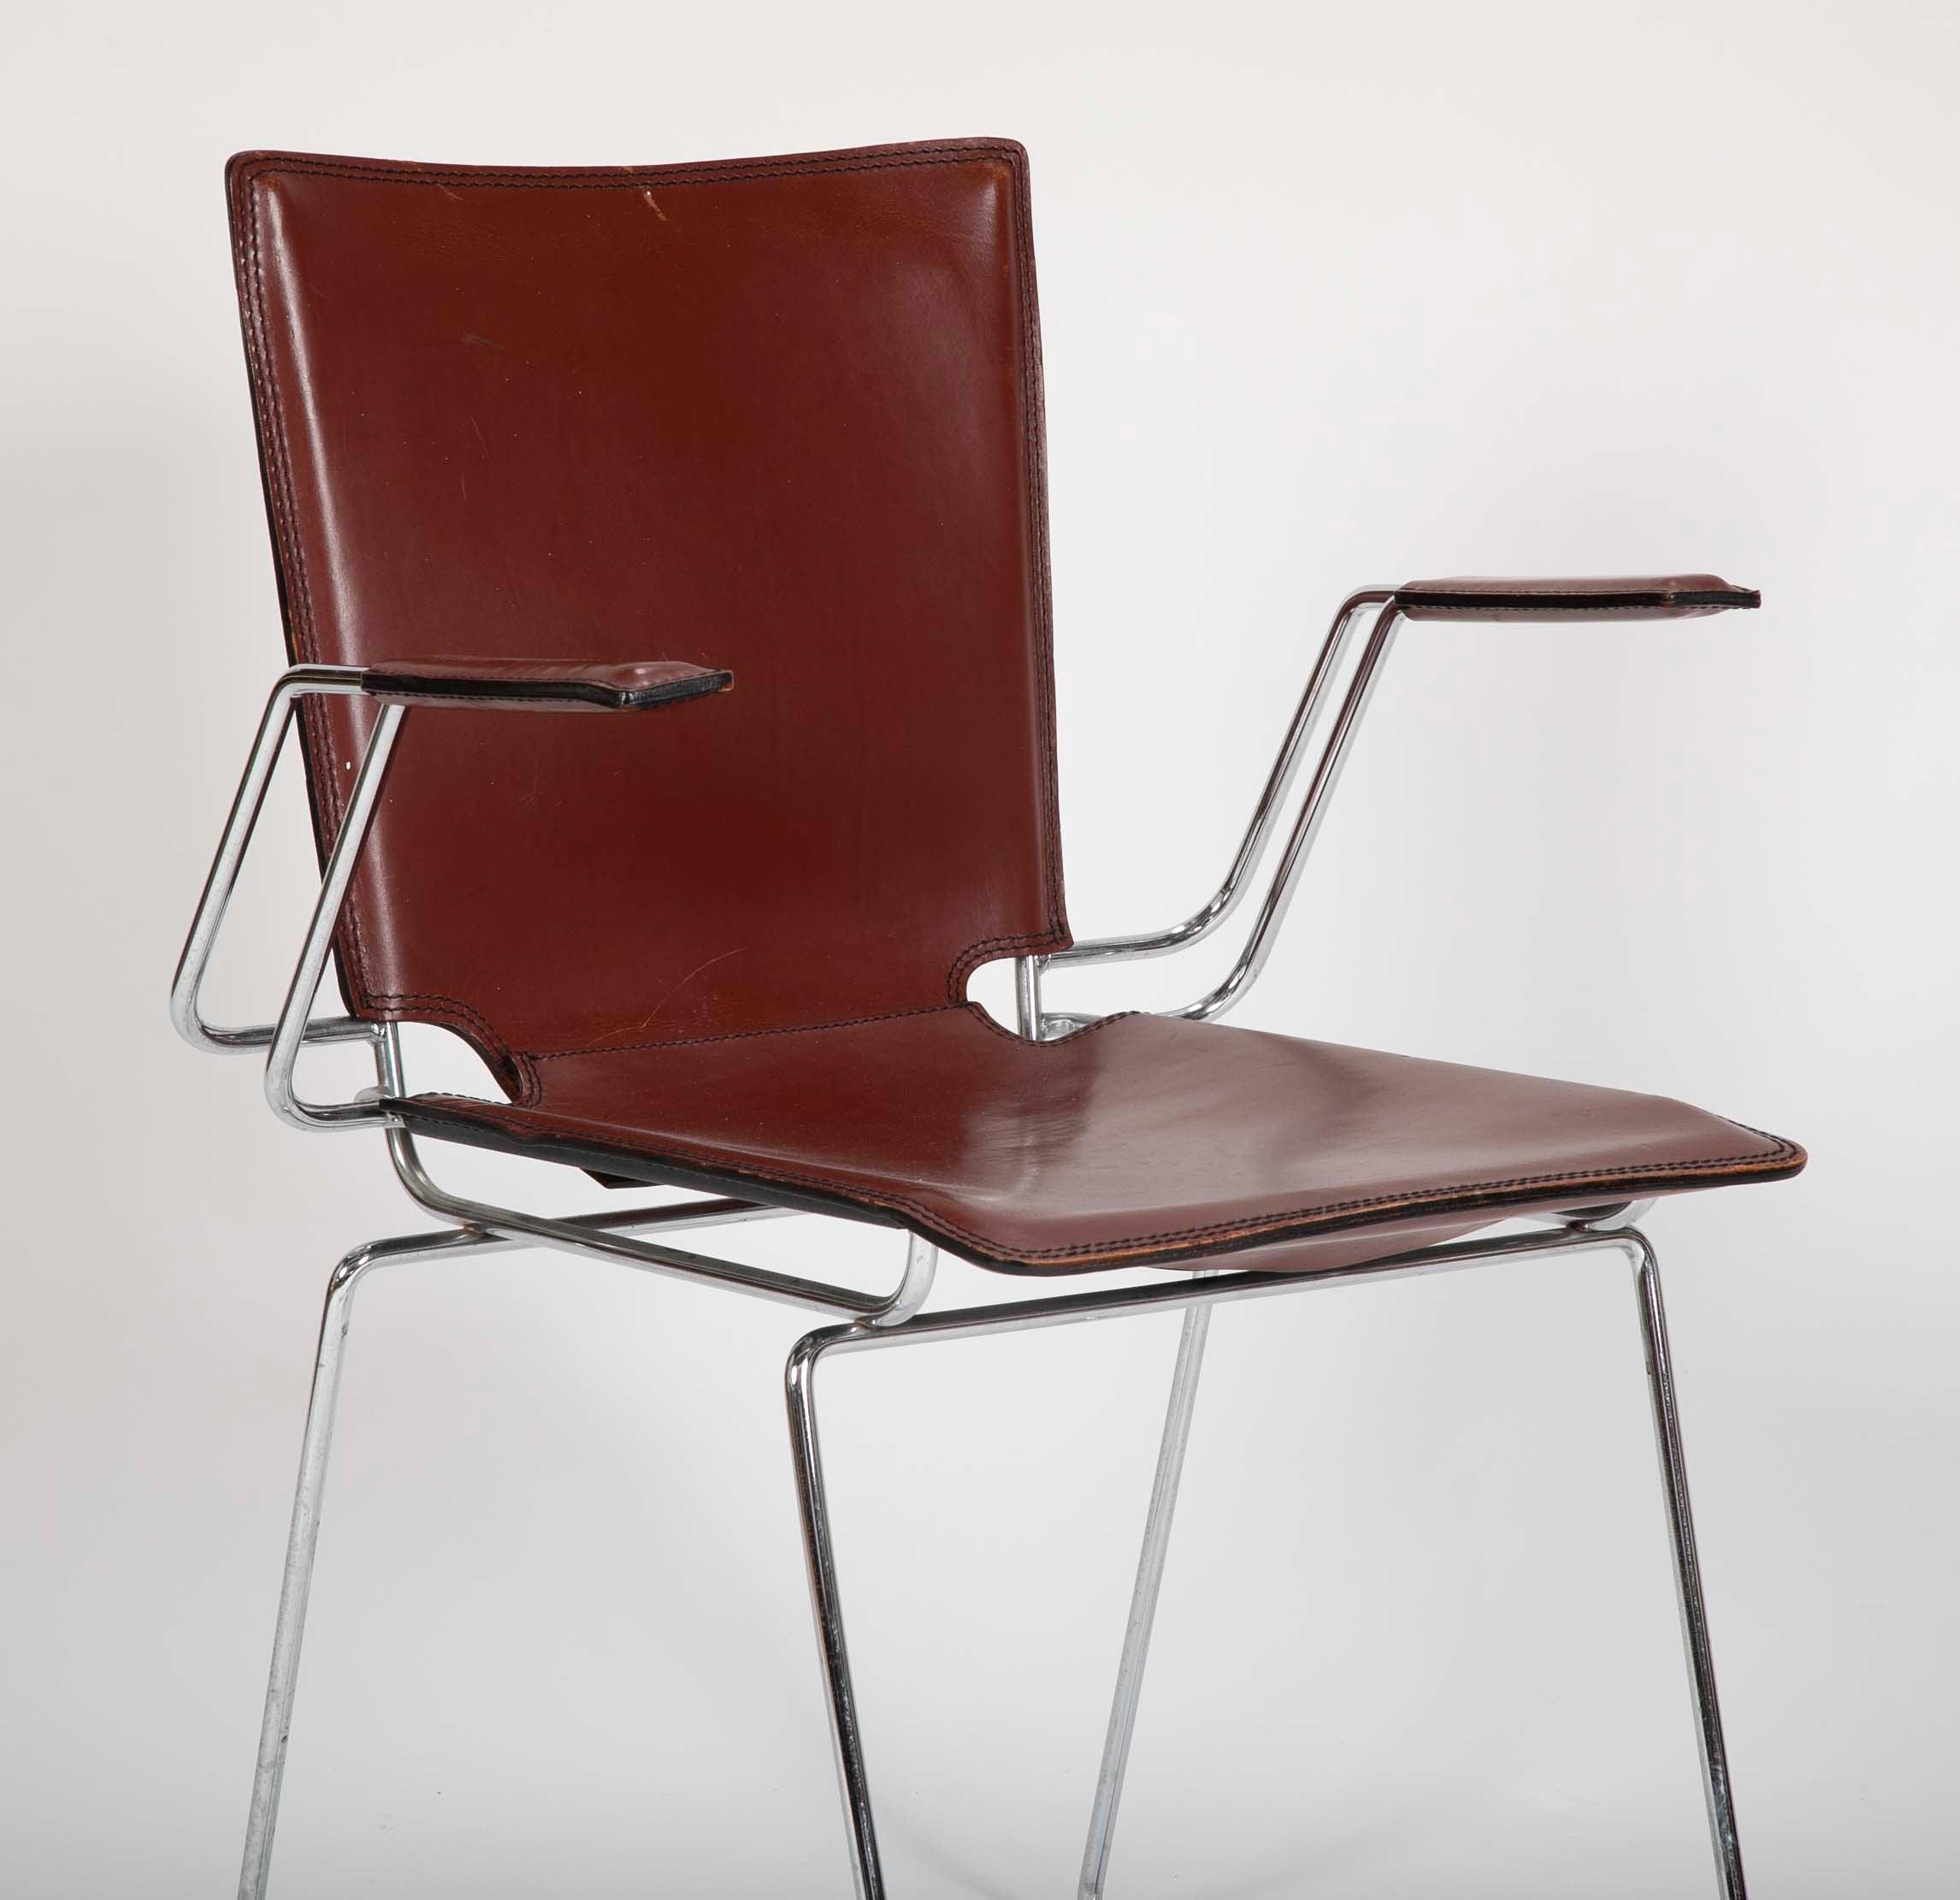 Pair of Red/Brown Leather and Metal Frame Chairs